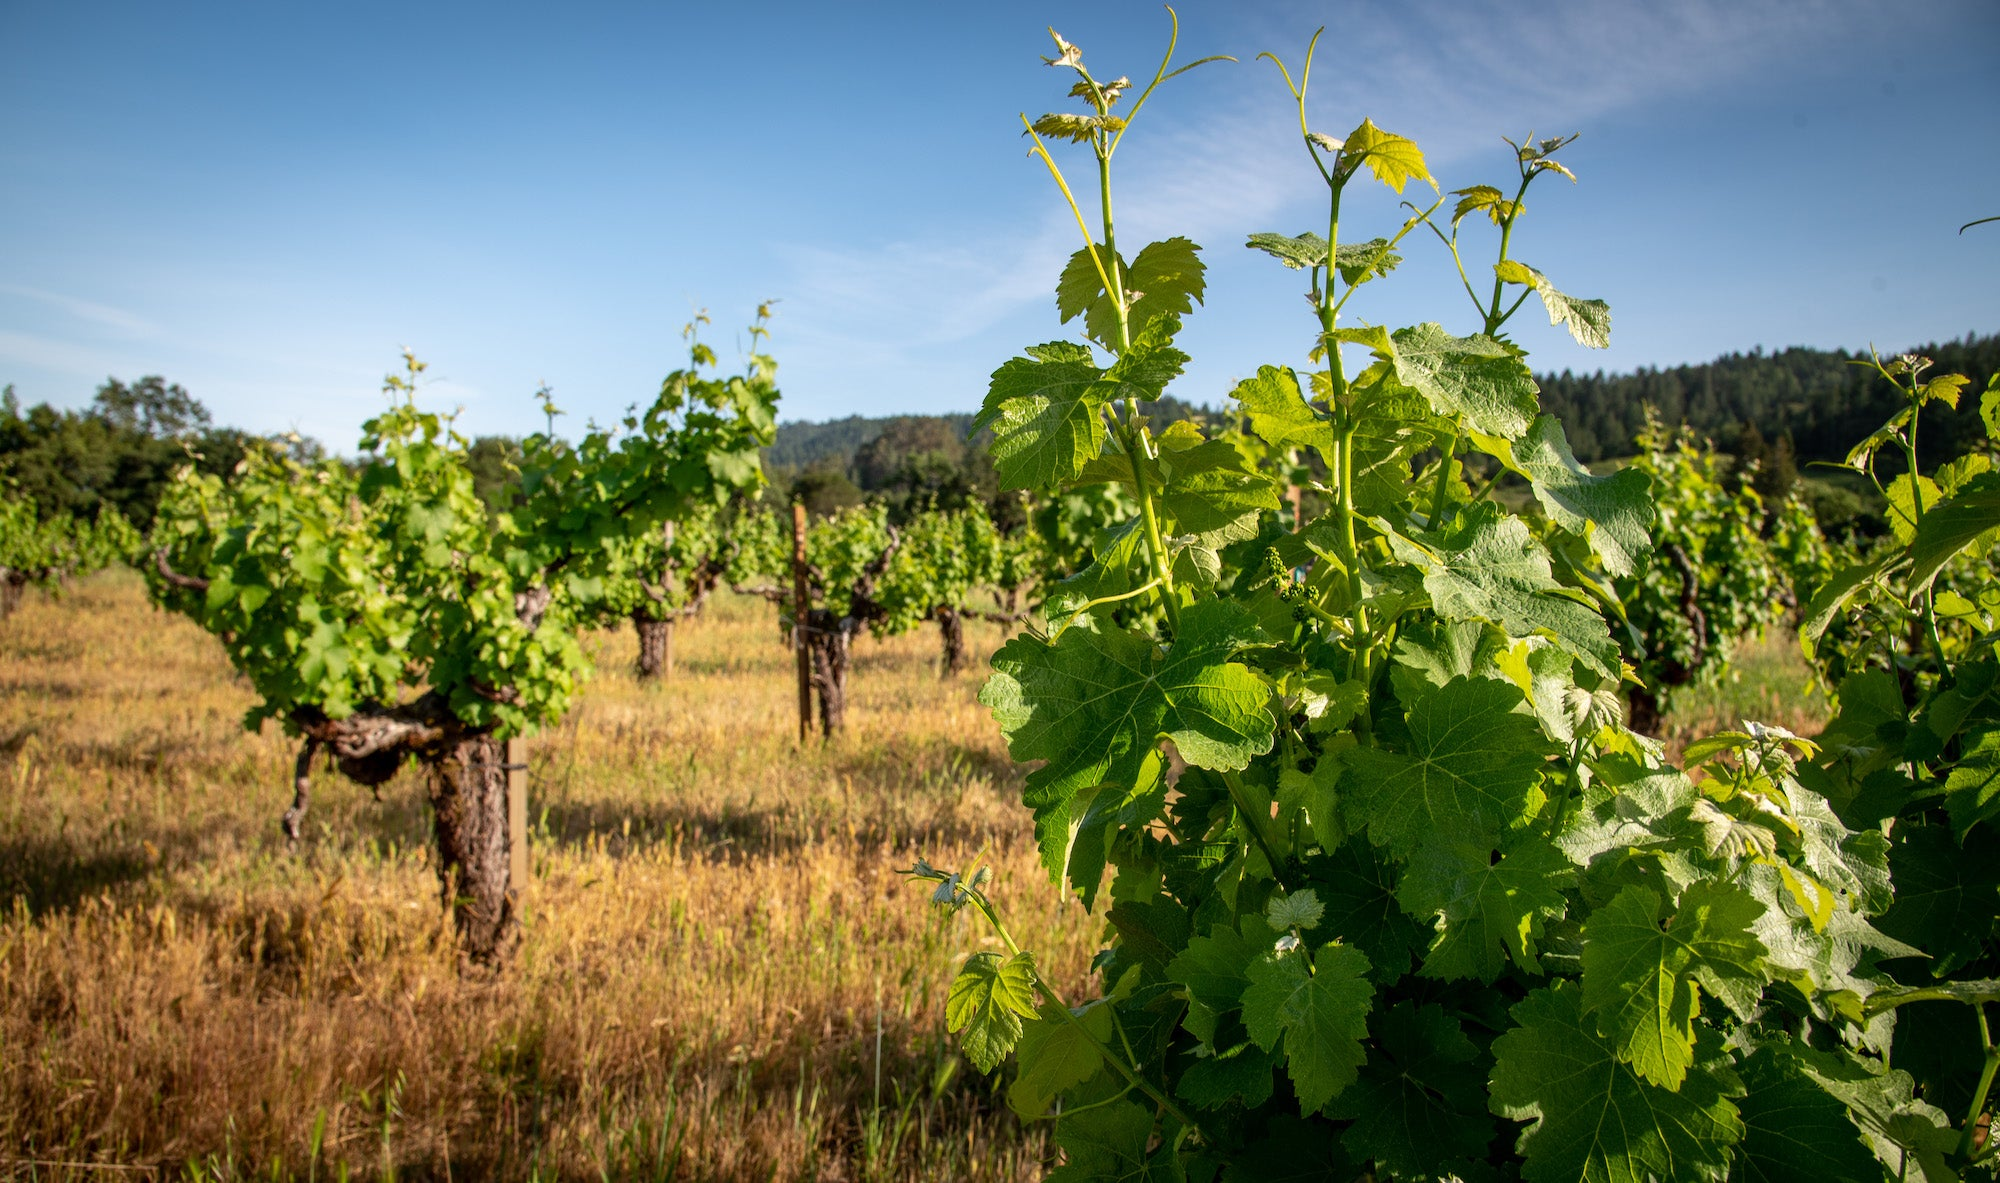 The Wappo Hill Vineyard, in late summer, stretches out across the rolling hills of the Stags Leap District.